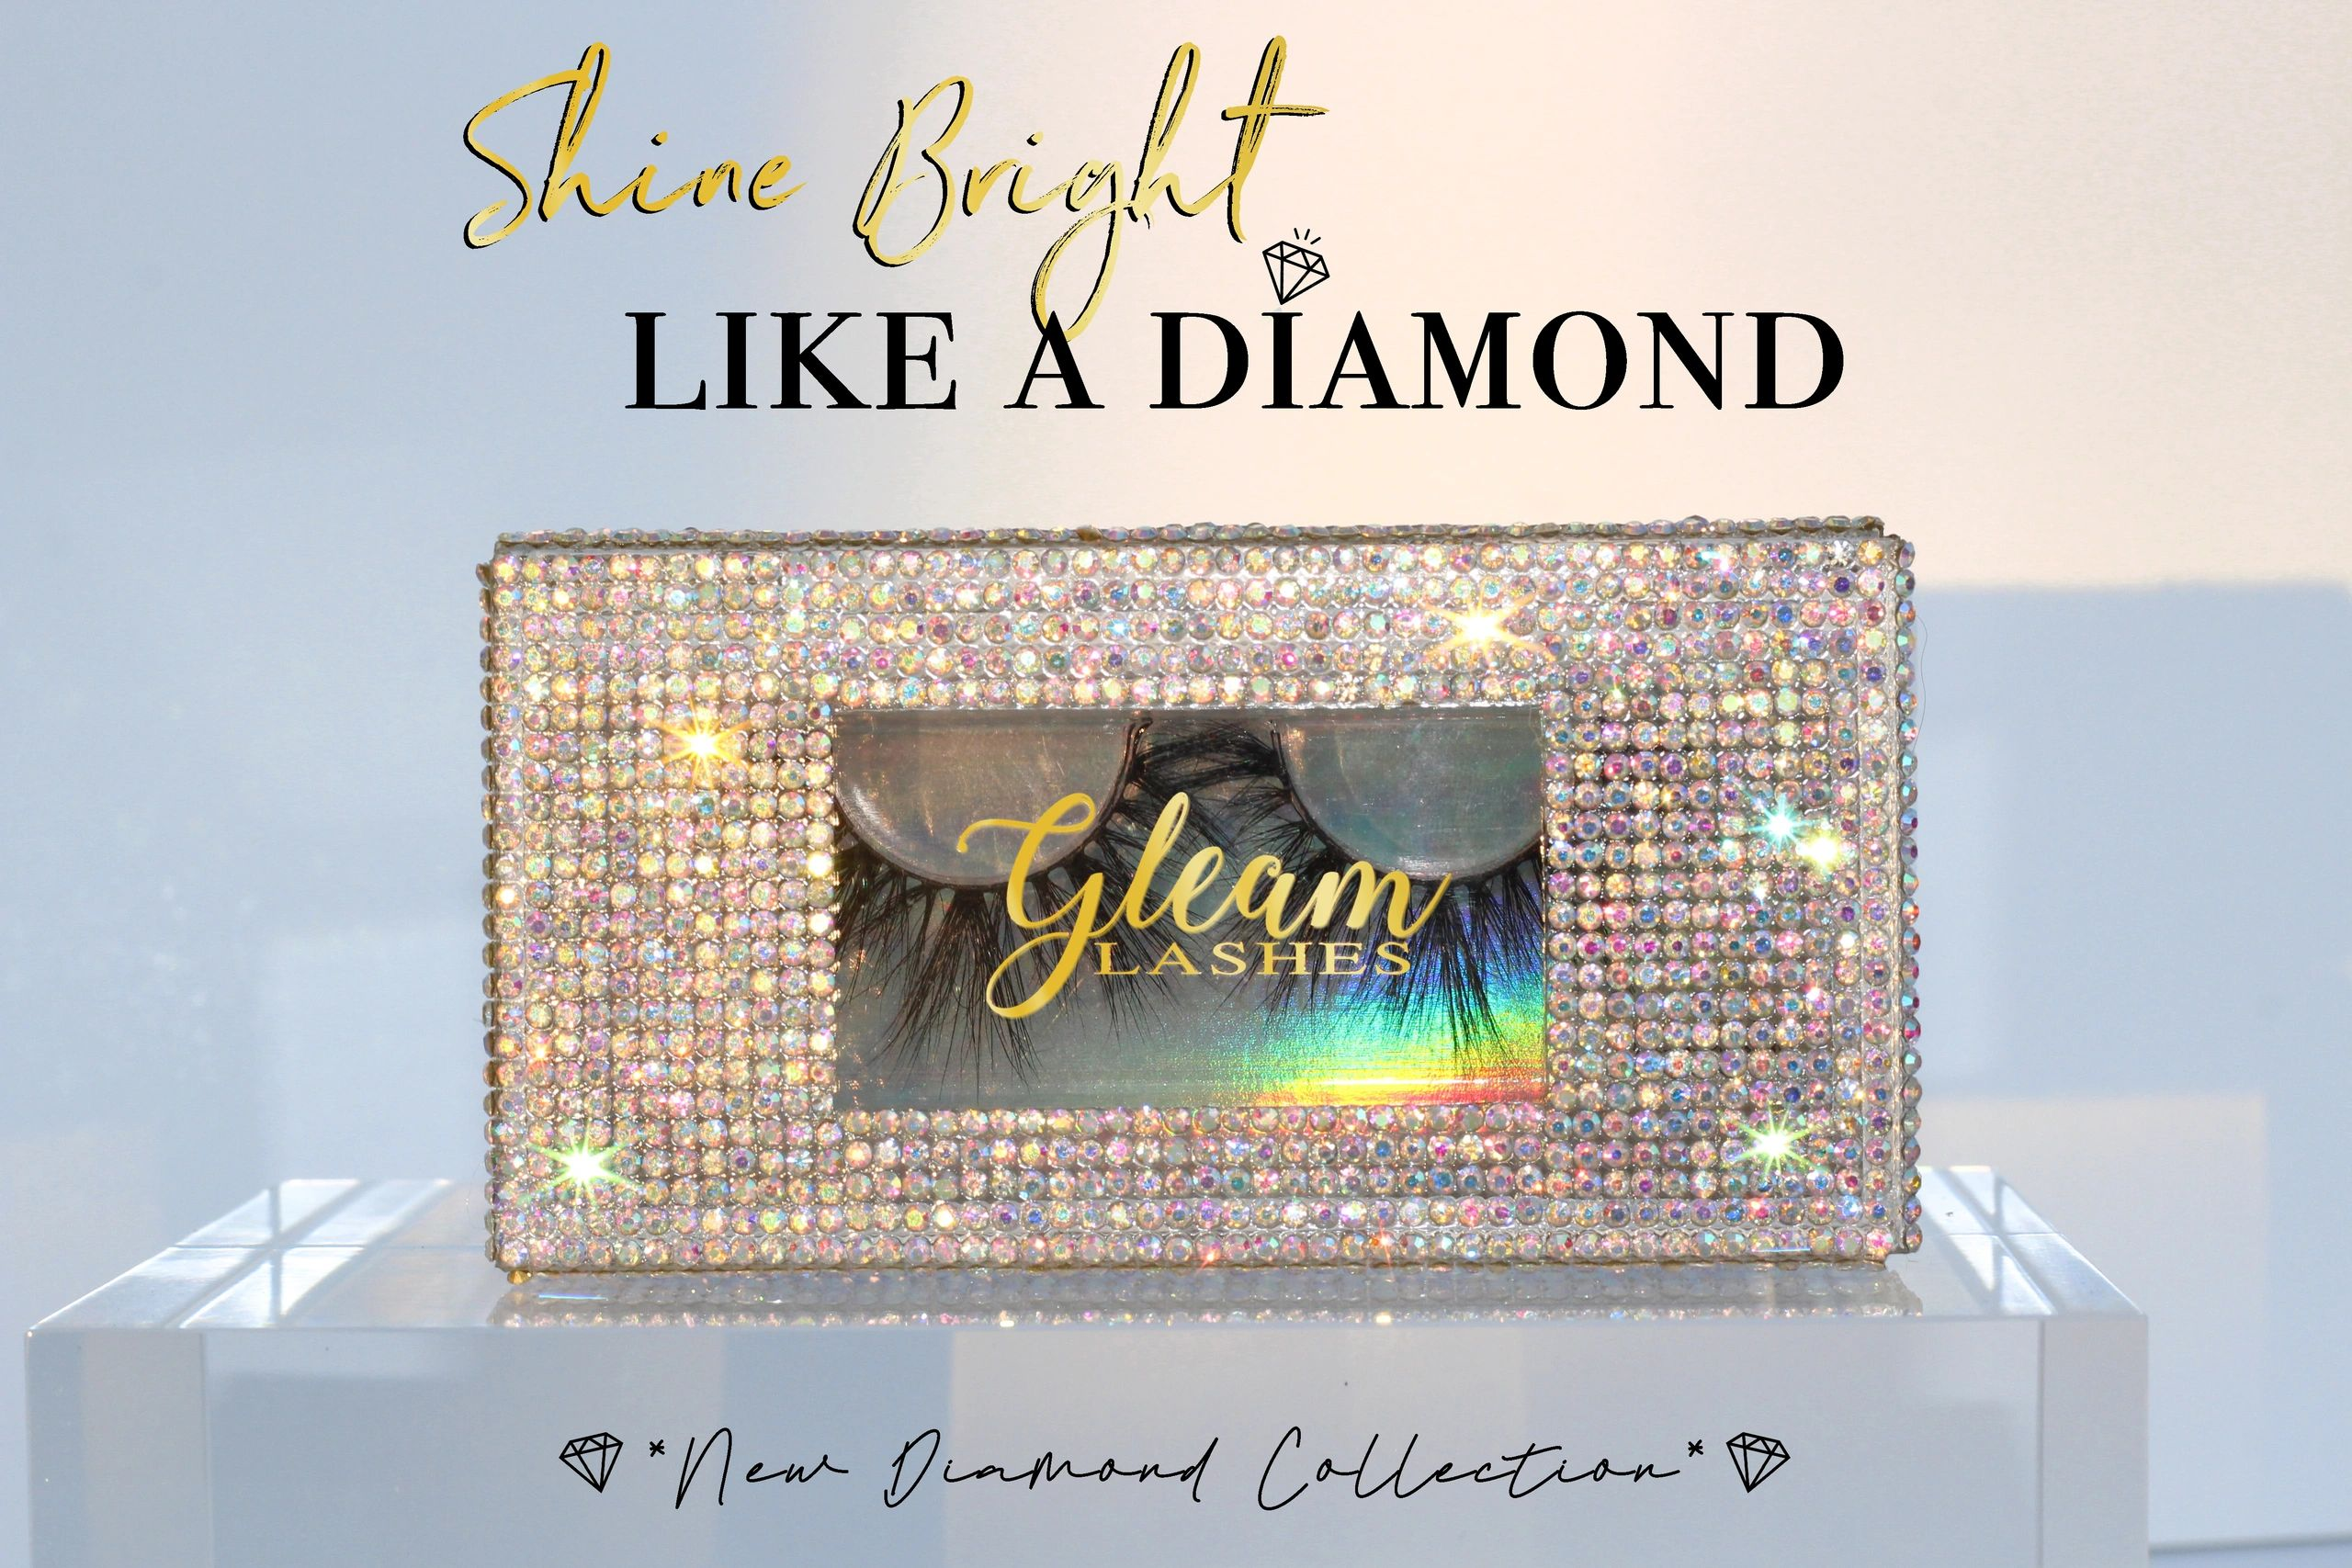 Shine Bright like a diamond banner. New Diamond collection out now